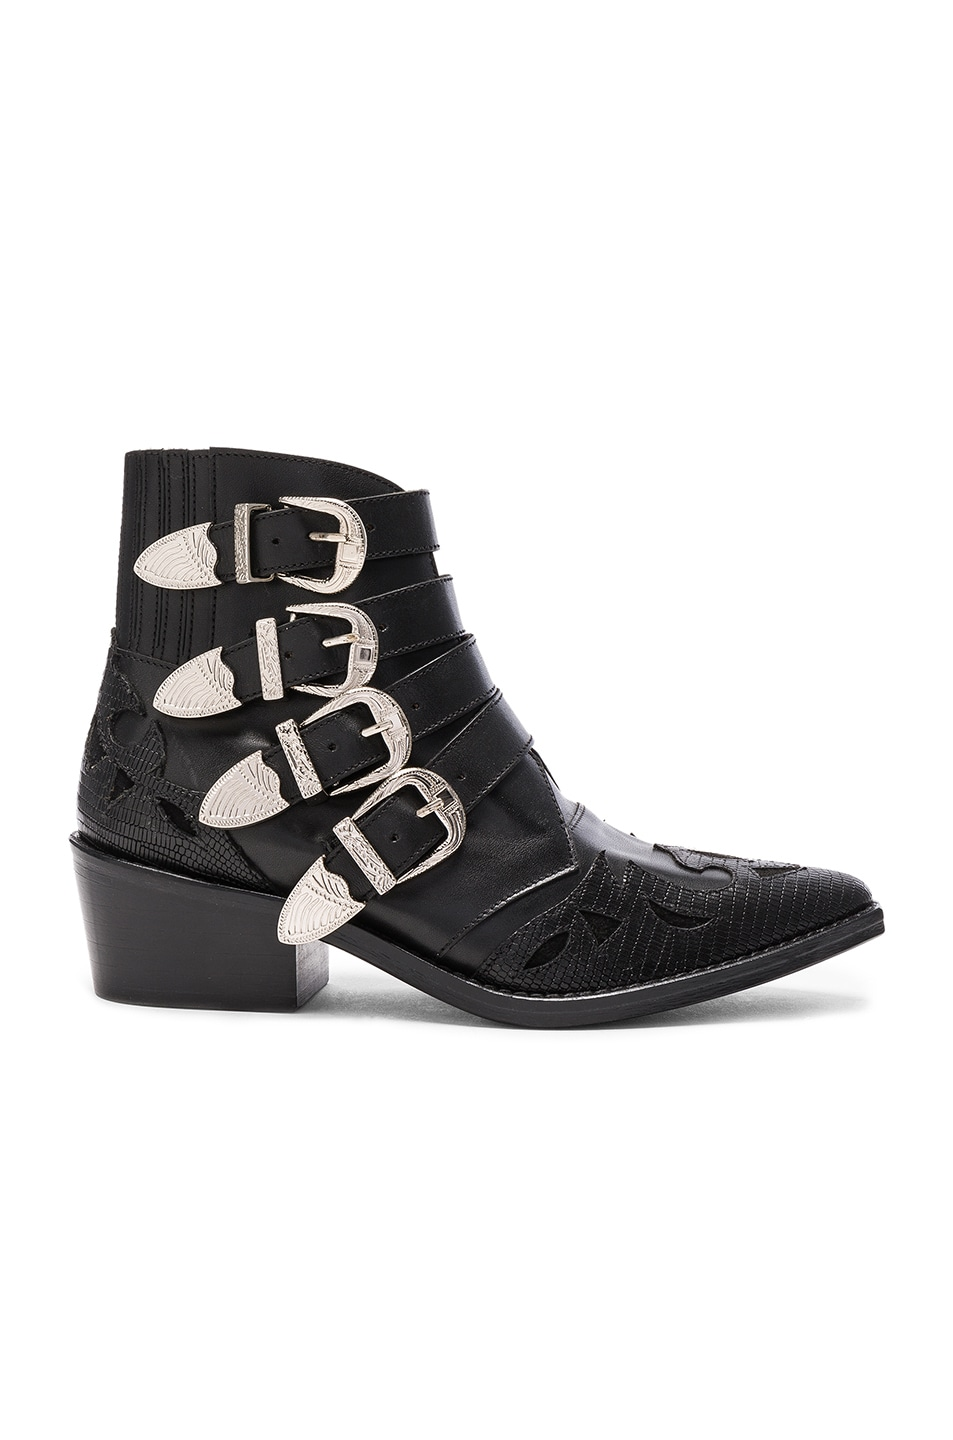 Image 1 of TOGA PULLA Leather Booties in Black Mix Leather